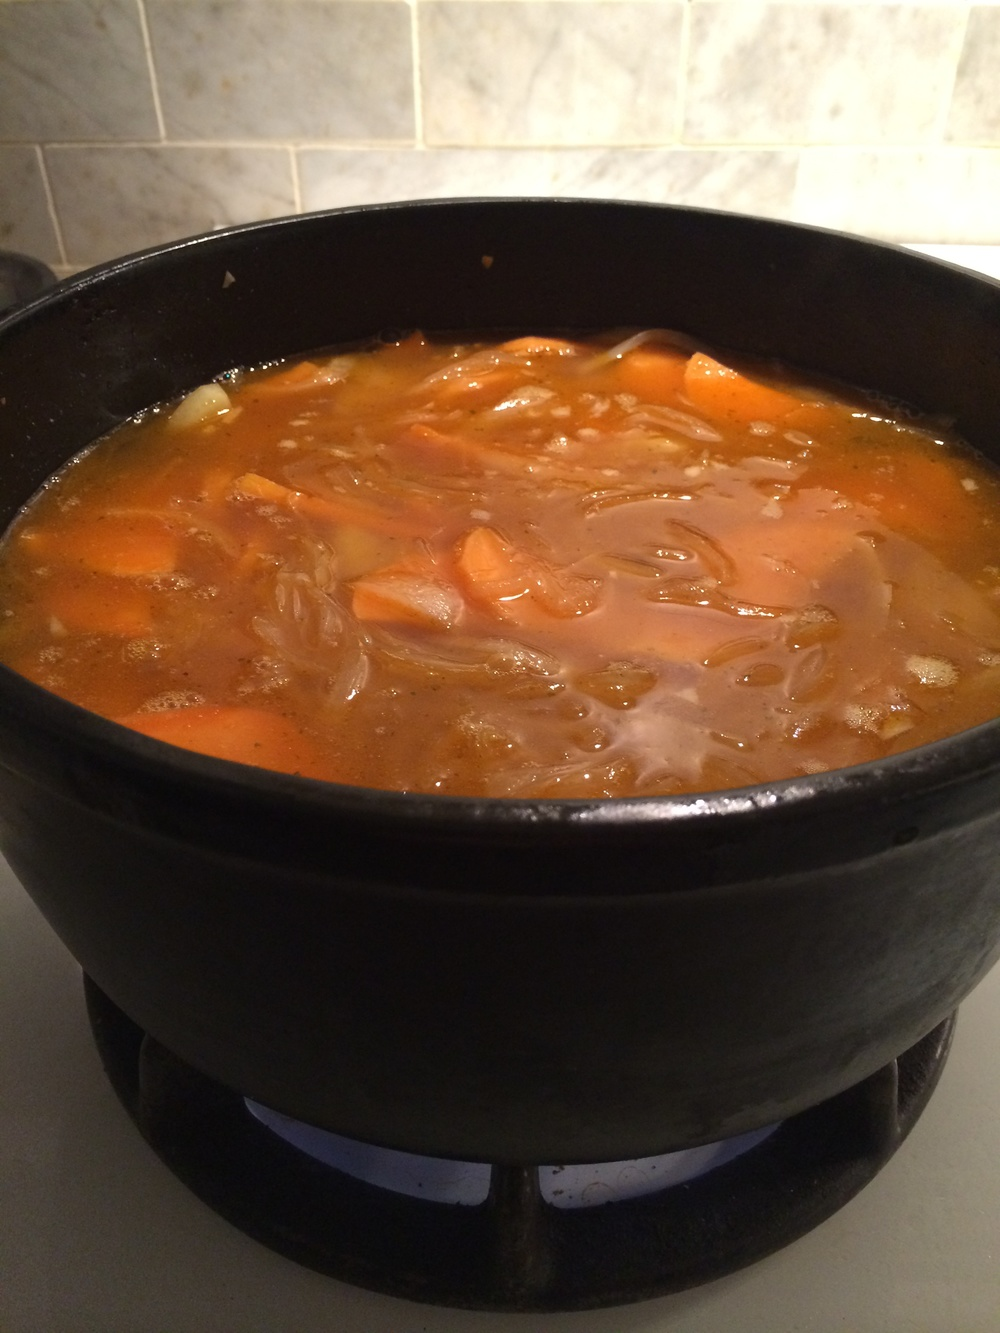 Add 6 cups stock and bring it to a boil. Then let it simmer until potatoes are even softer. Say 20 minutes.